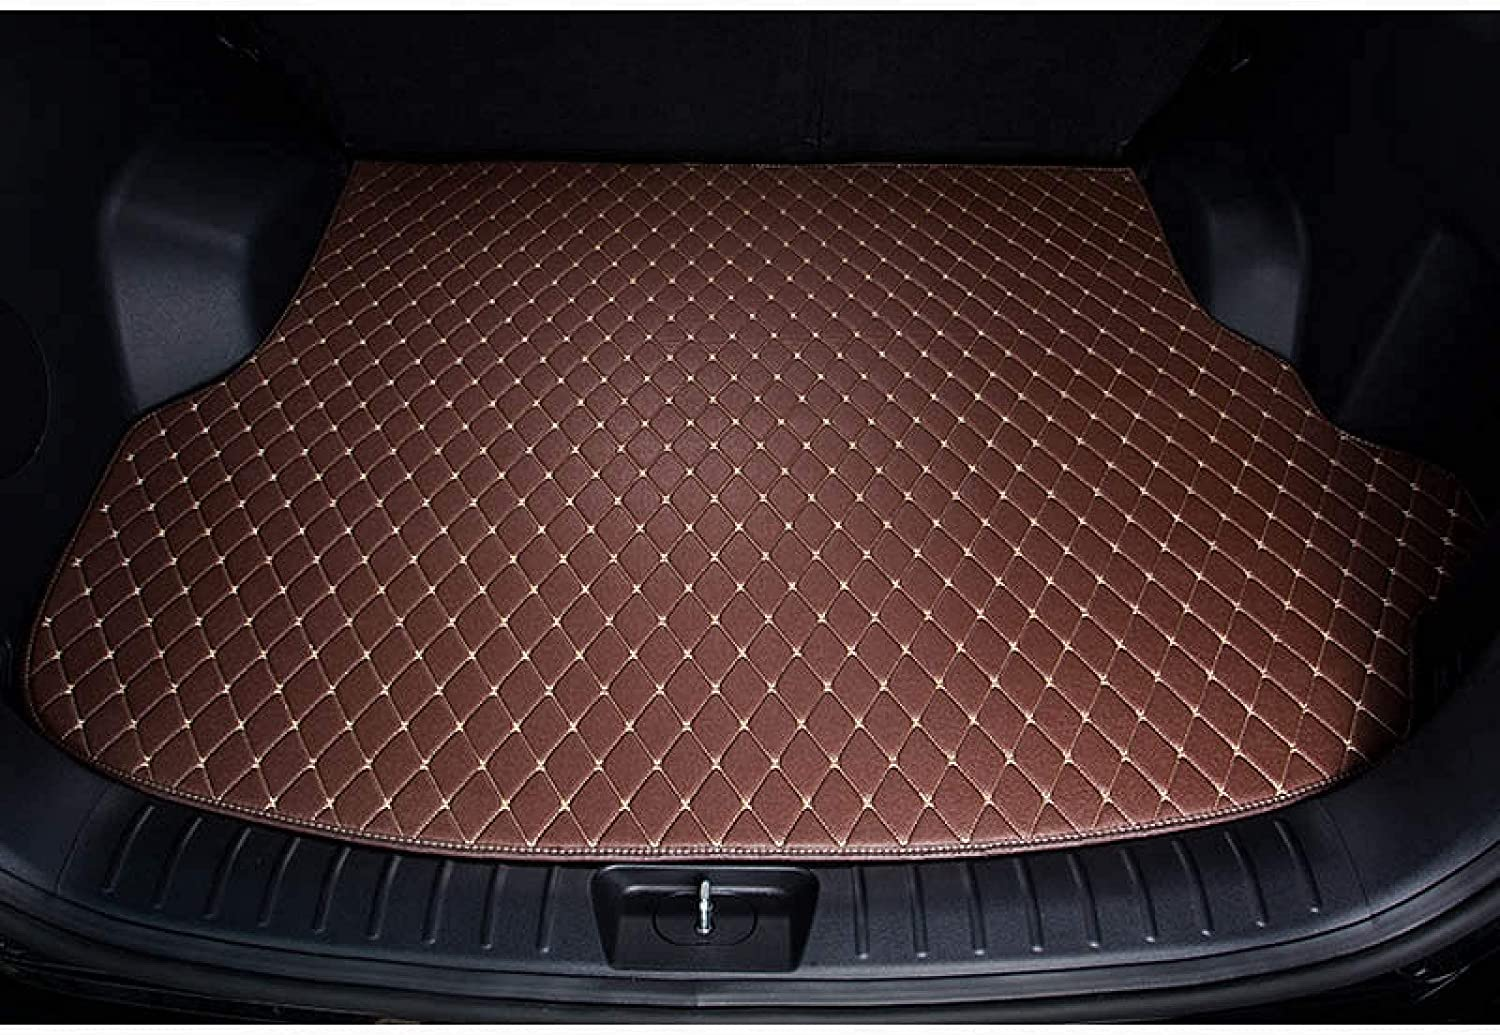 LFDSBLJ Car Trunk Mat Selling and selling for QX30 Lugg Recommended 2017 Boot 2018